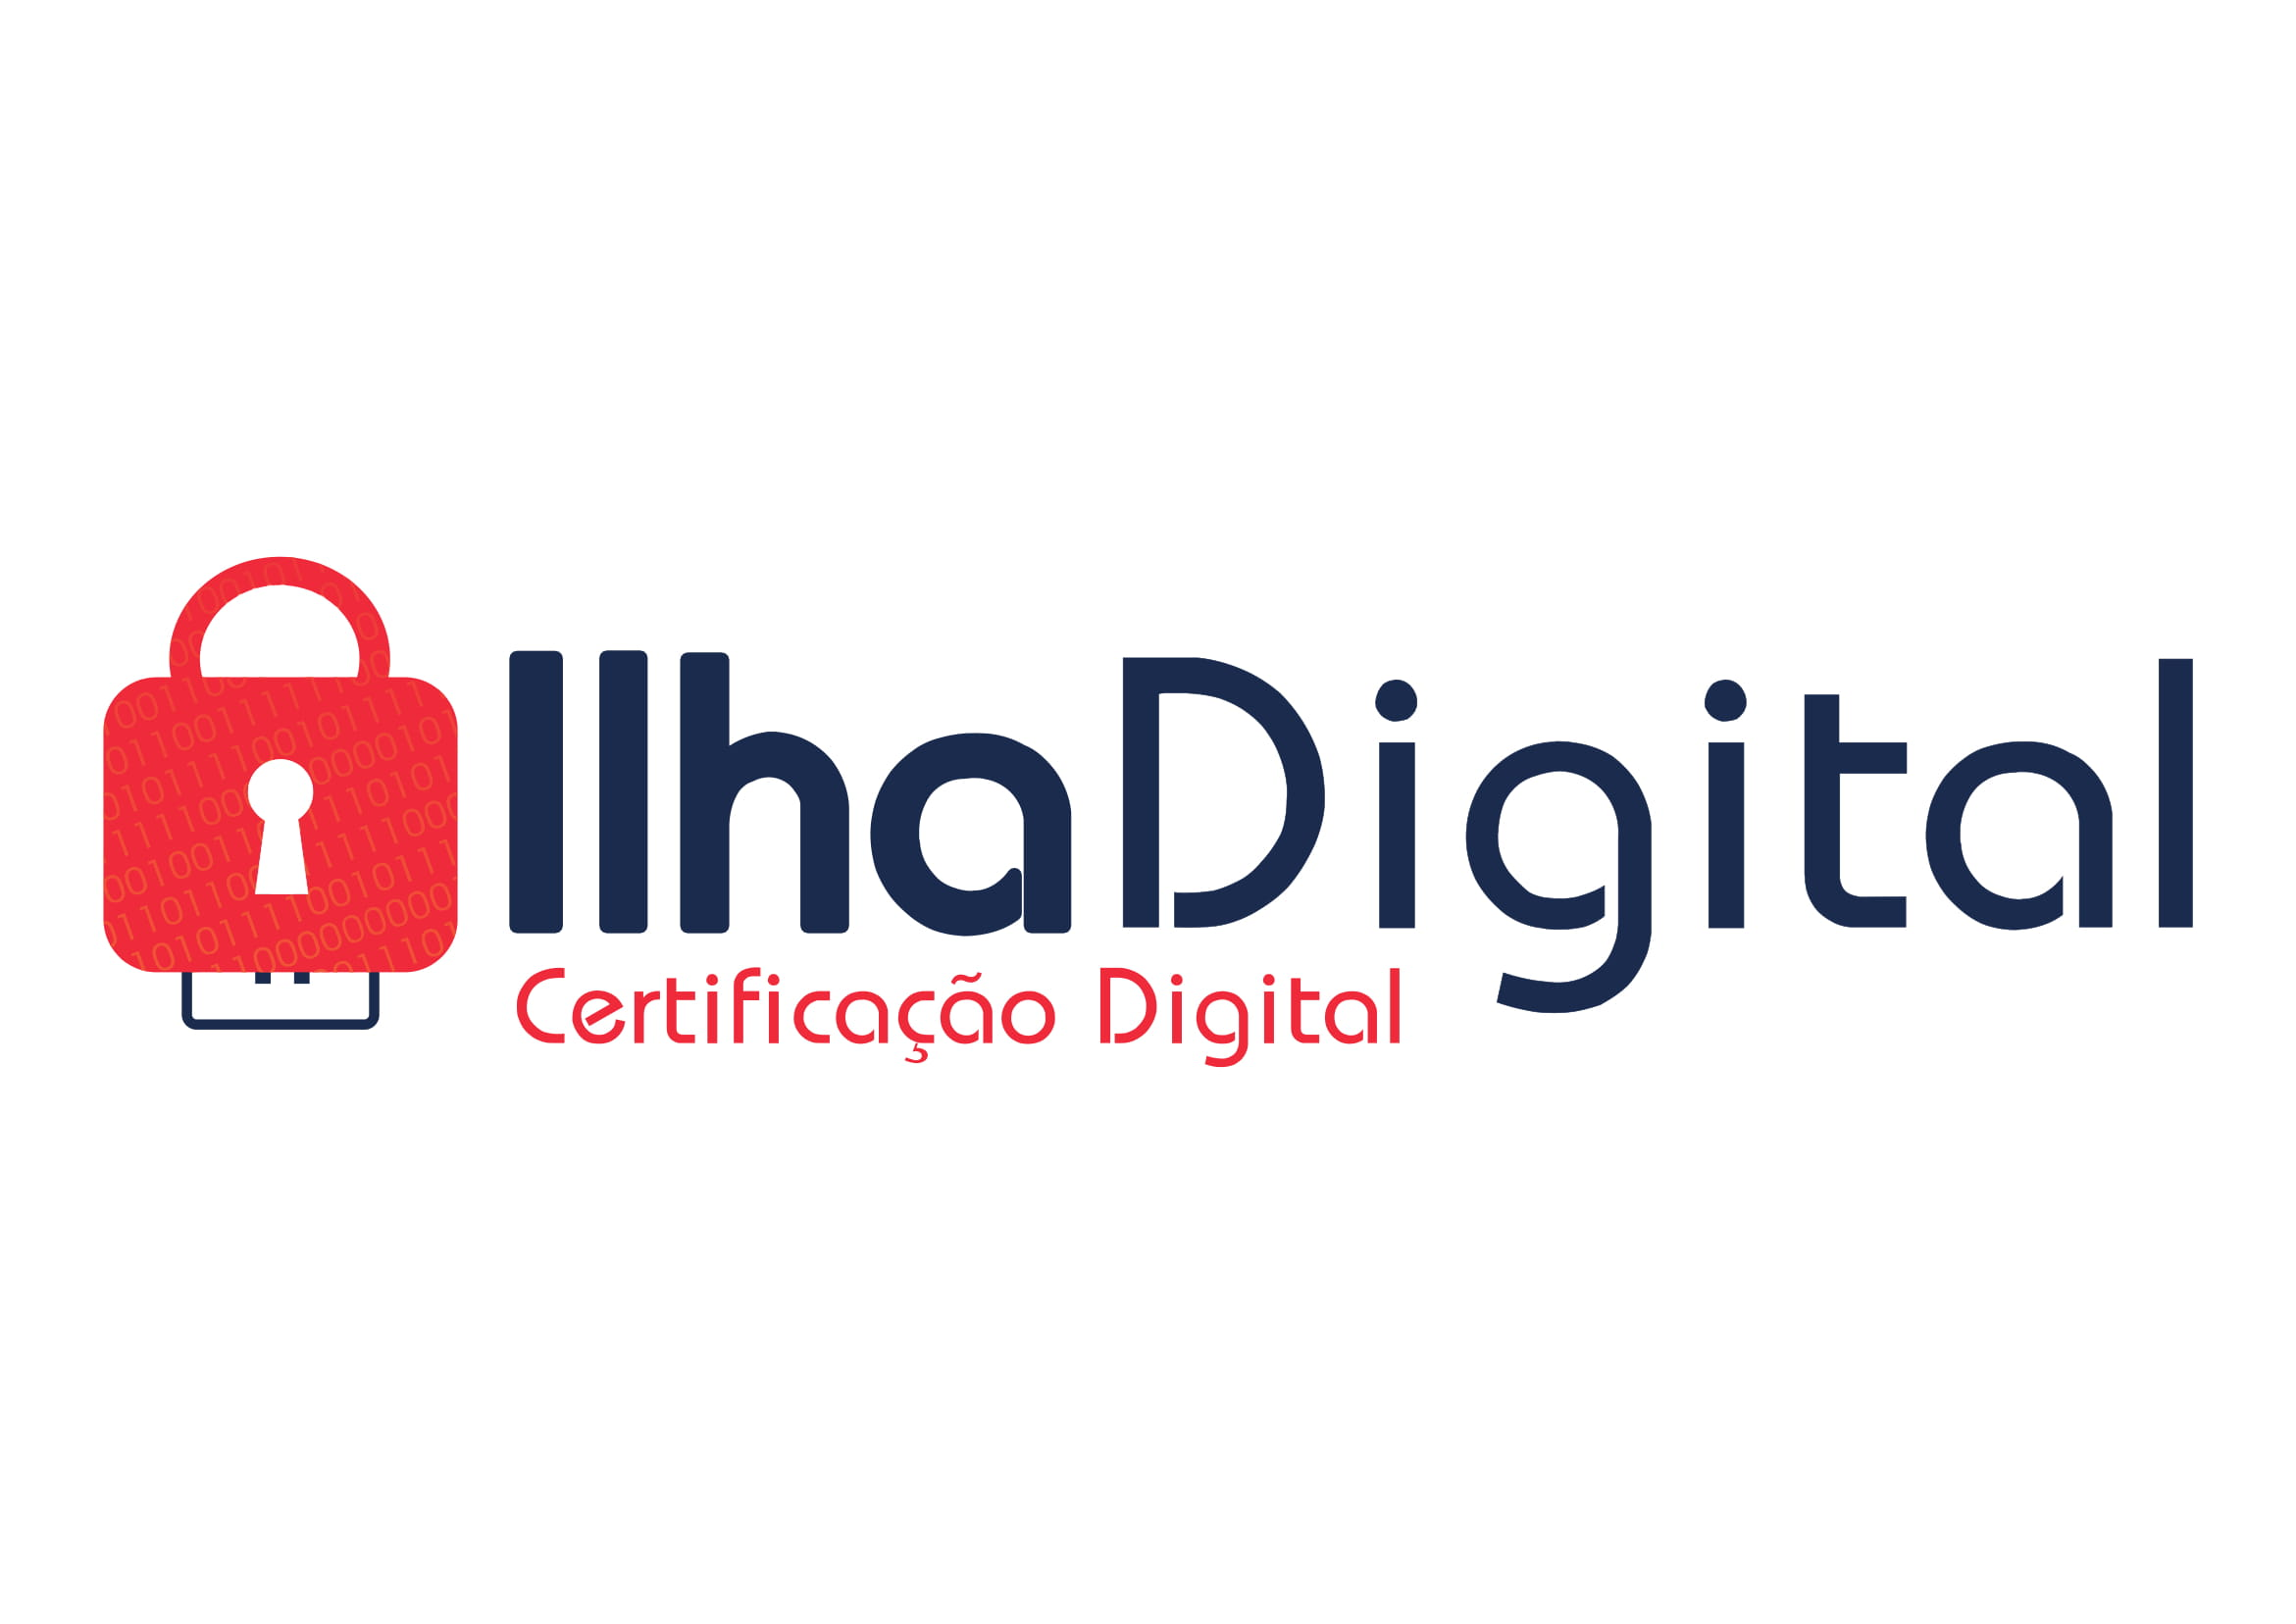 Iha Digital